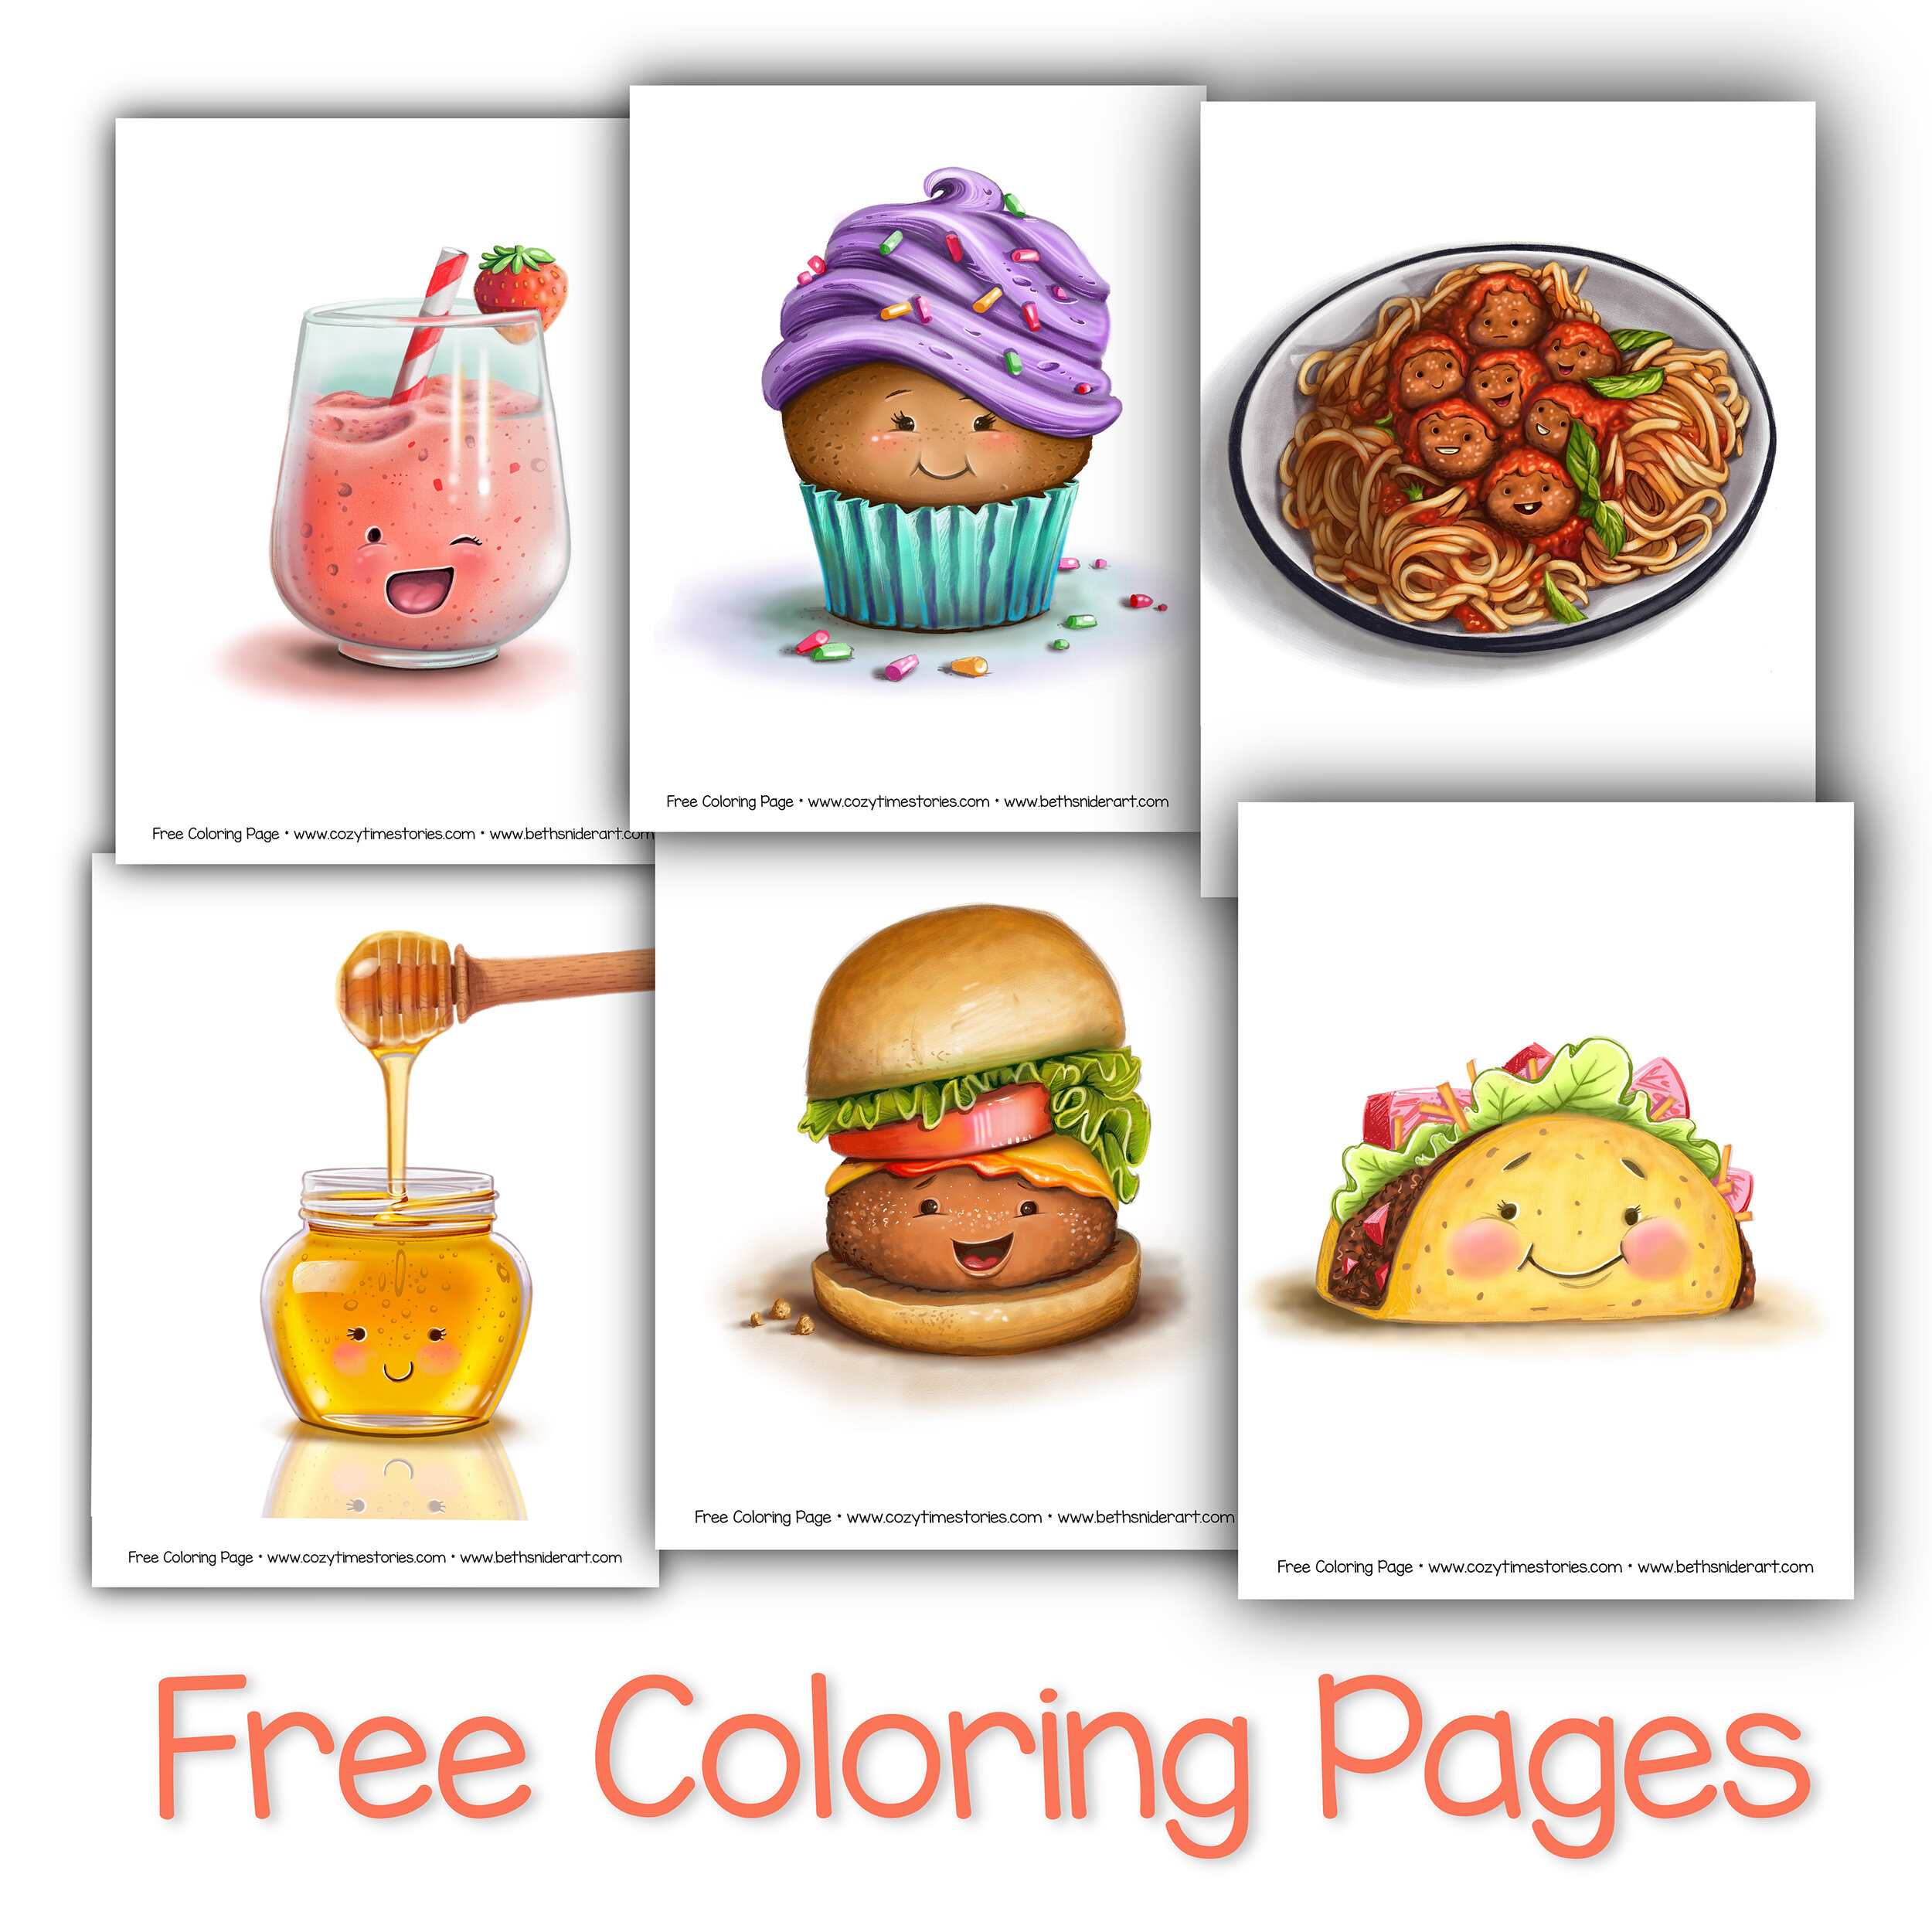 Free Coloring Pages Beth Snider